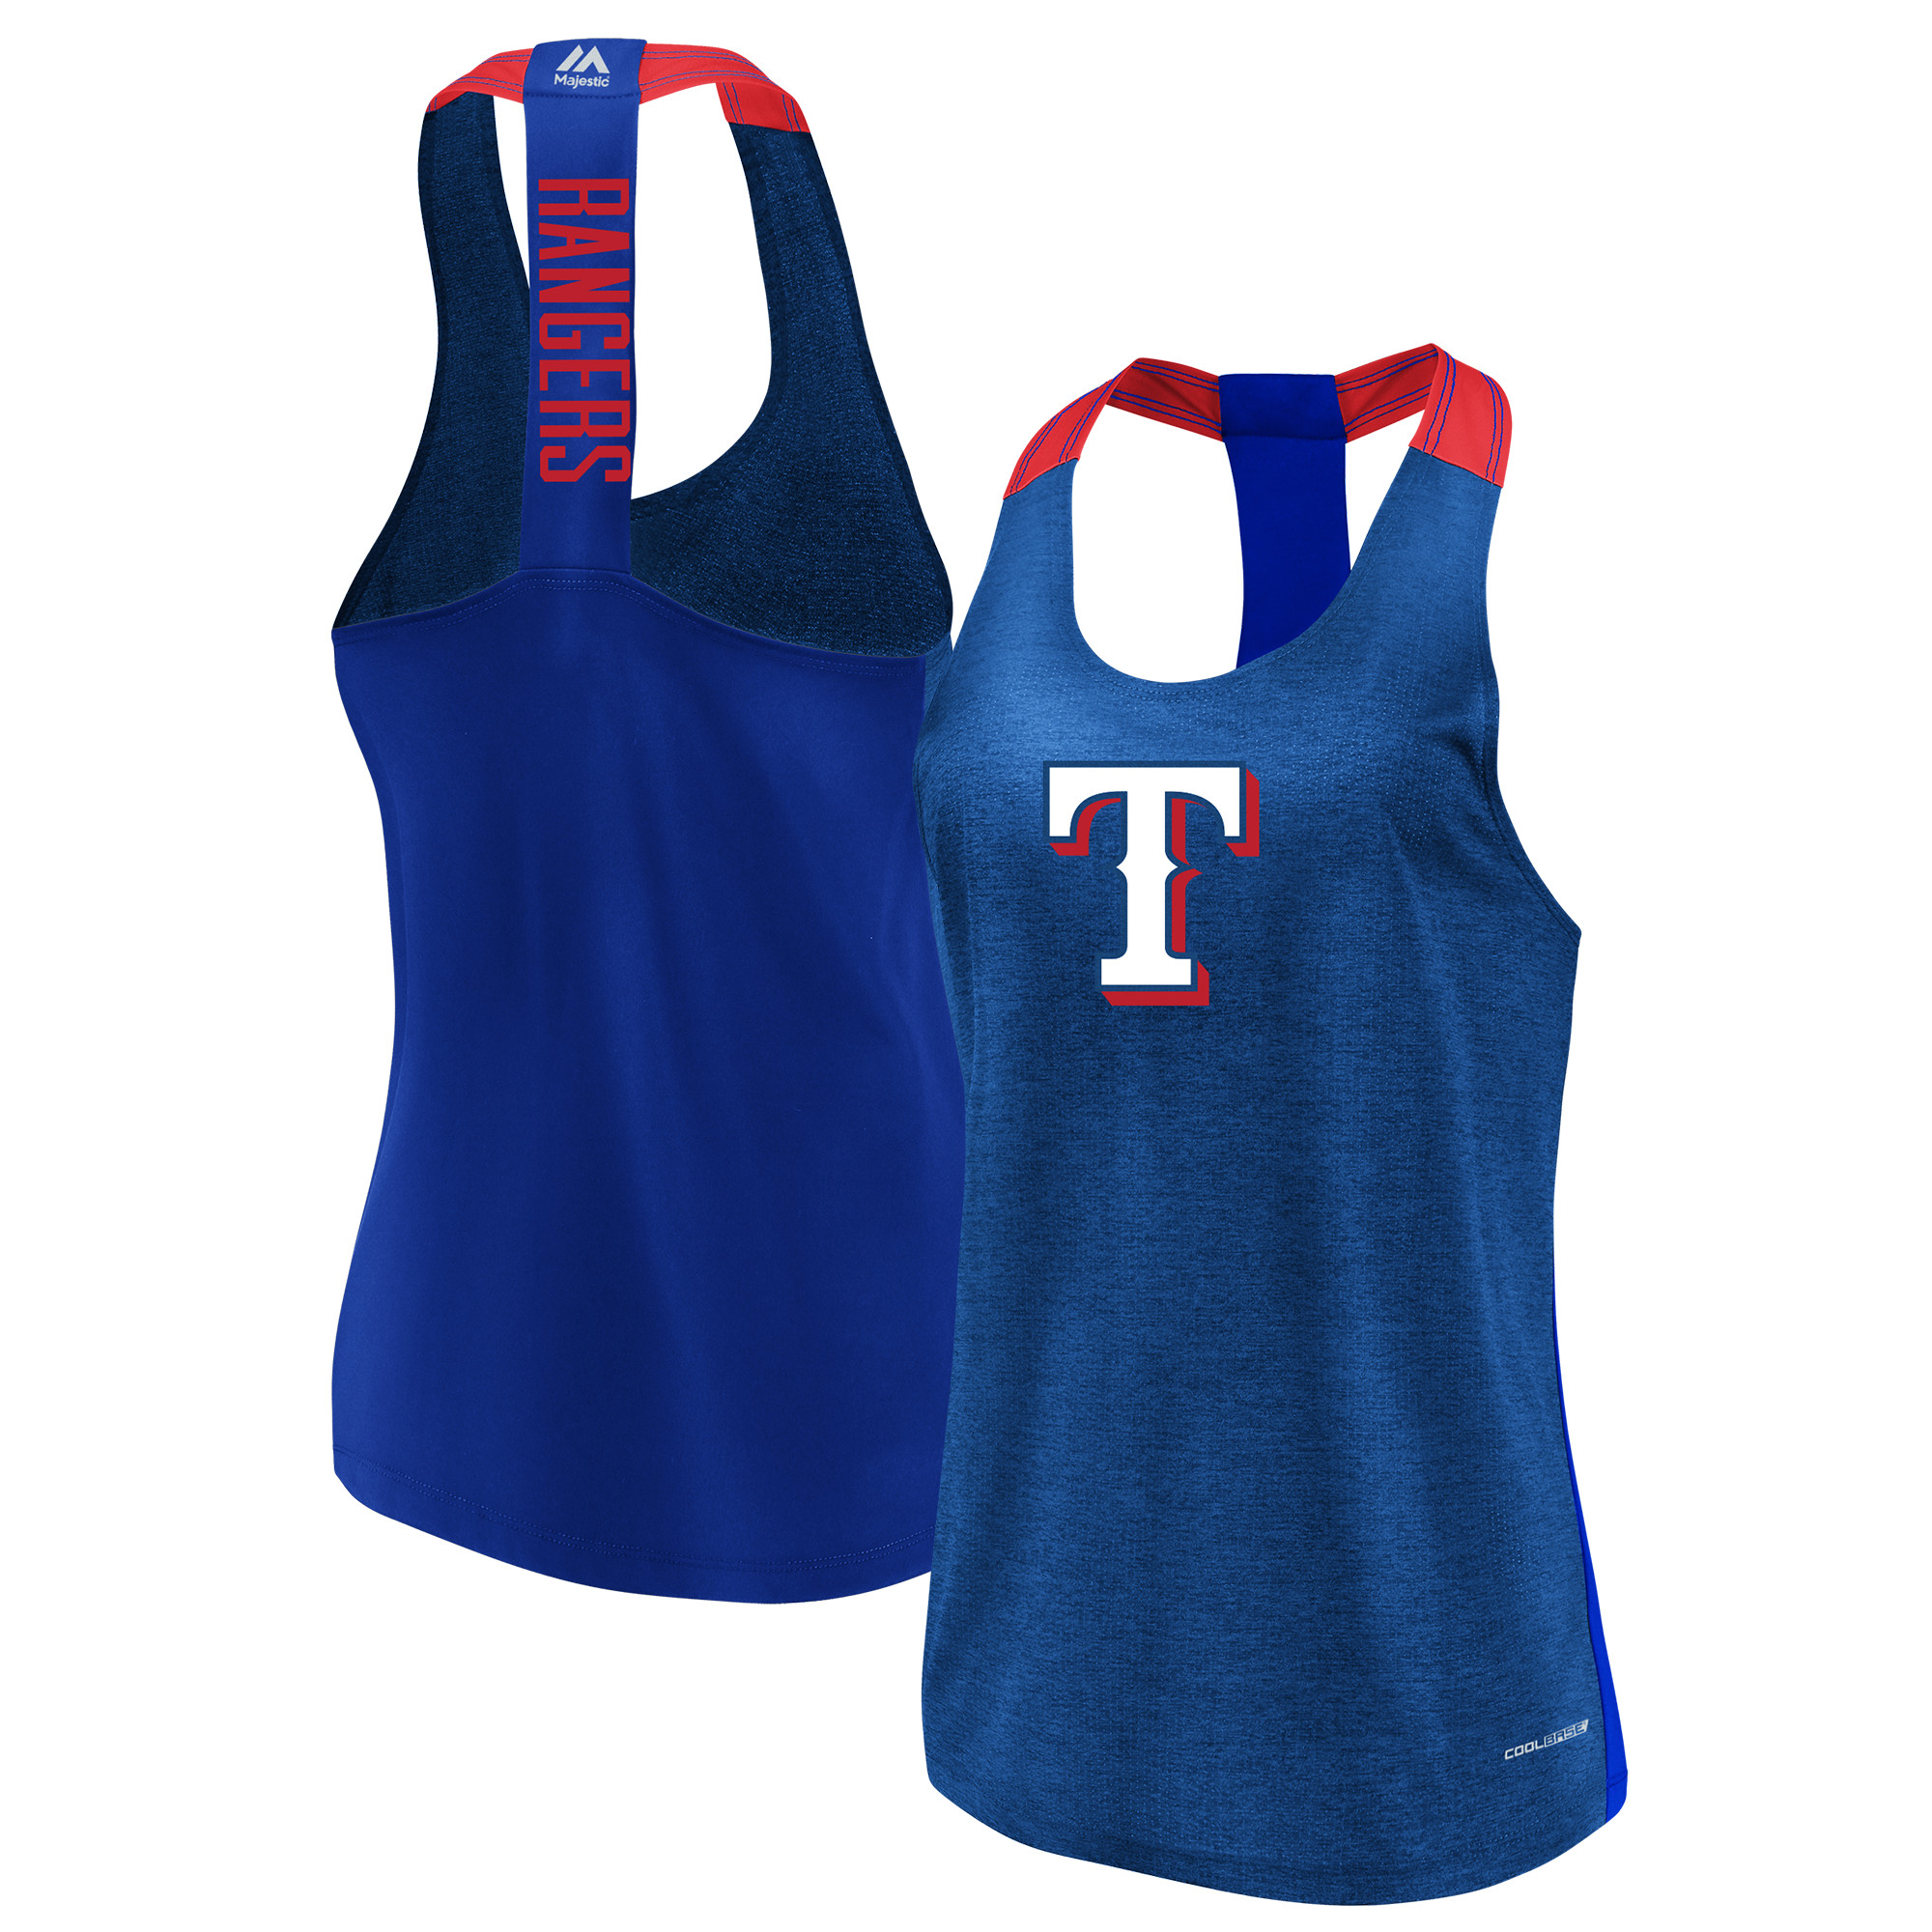 Texas Rangers Majestic Women's Desire More Cool Base Tank Top Heathered Royal by MAJESTIC LSG